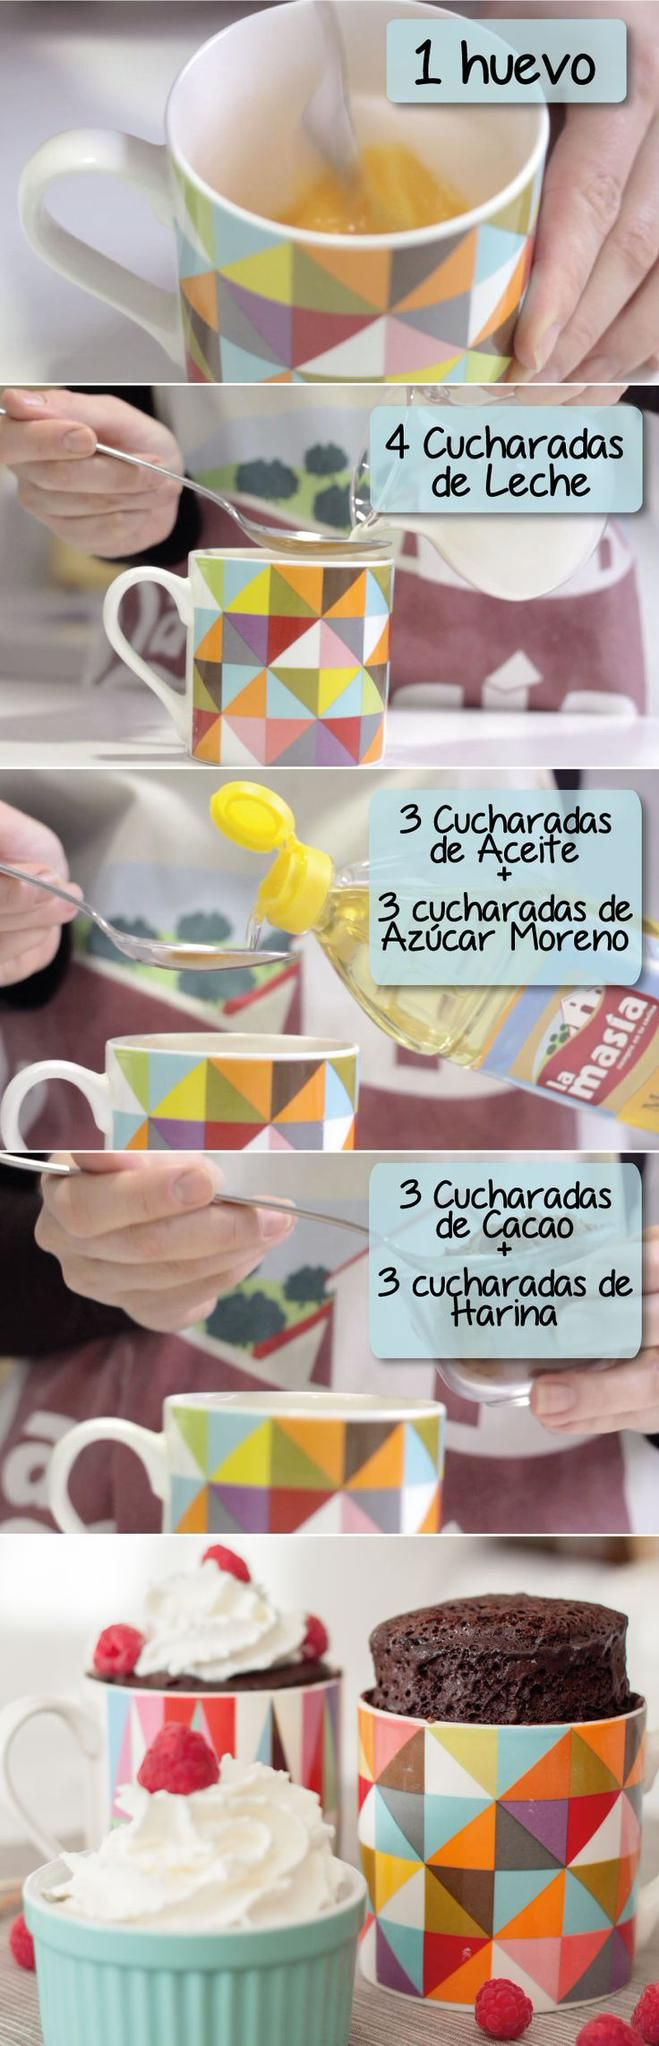 "Todo en Domingo on Twitter: ""#Receta: Brownie en taza. Sigue estos pasos y luego llévalo 3 minutos al microonda, y listo. https://t.co/gQz88Mt0Dp"""